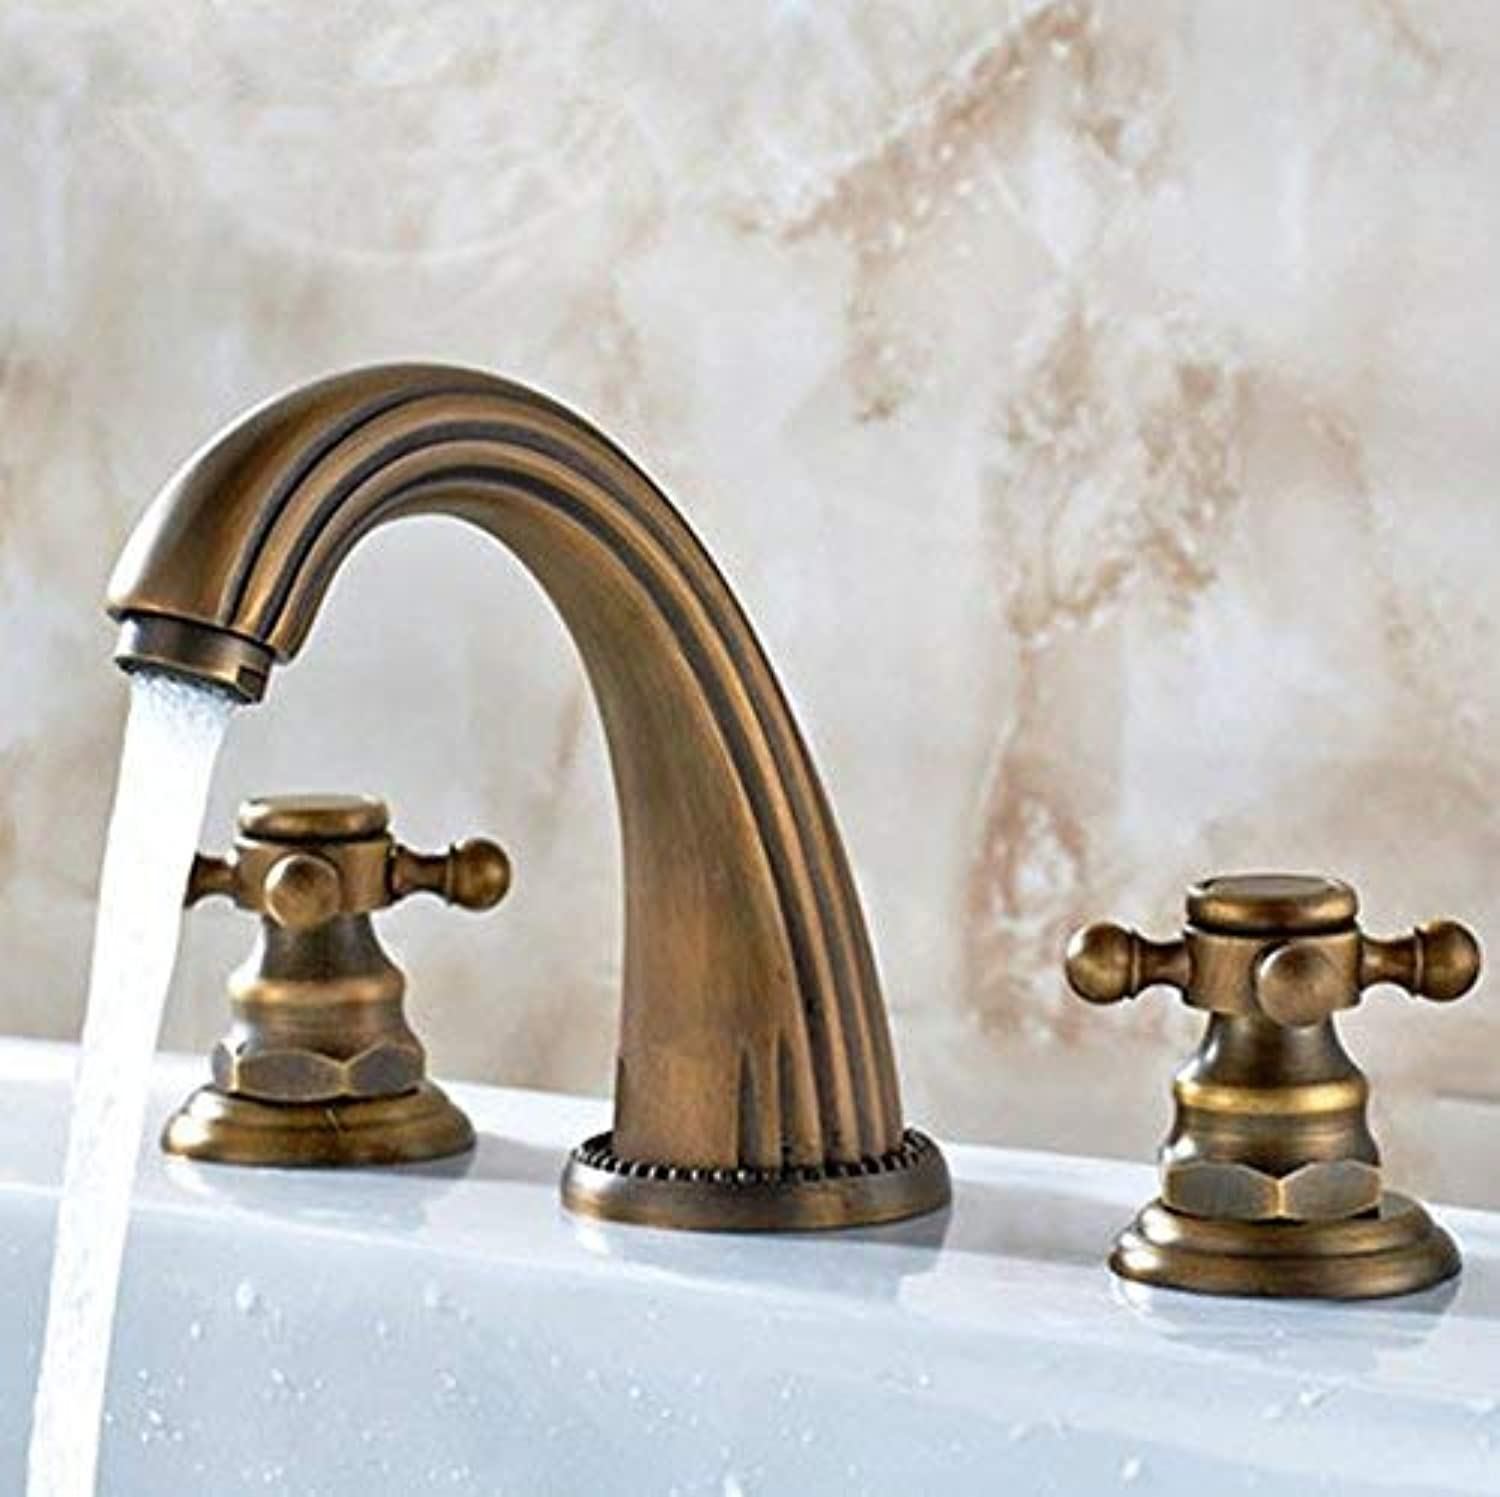 Oudan Basin Mixer Tap Bathroom Sink Faucet European style bathroom antique copper basin three-piece faucet 3-hole wash basin splitter, hot and cold water faucets Mixer Taps